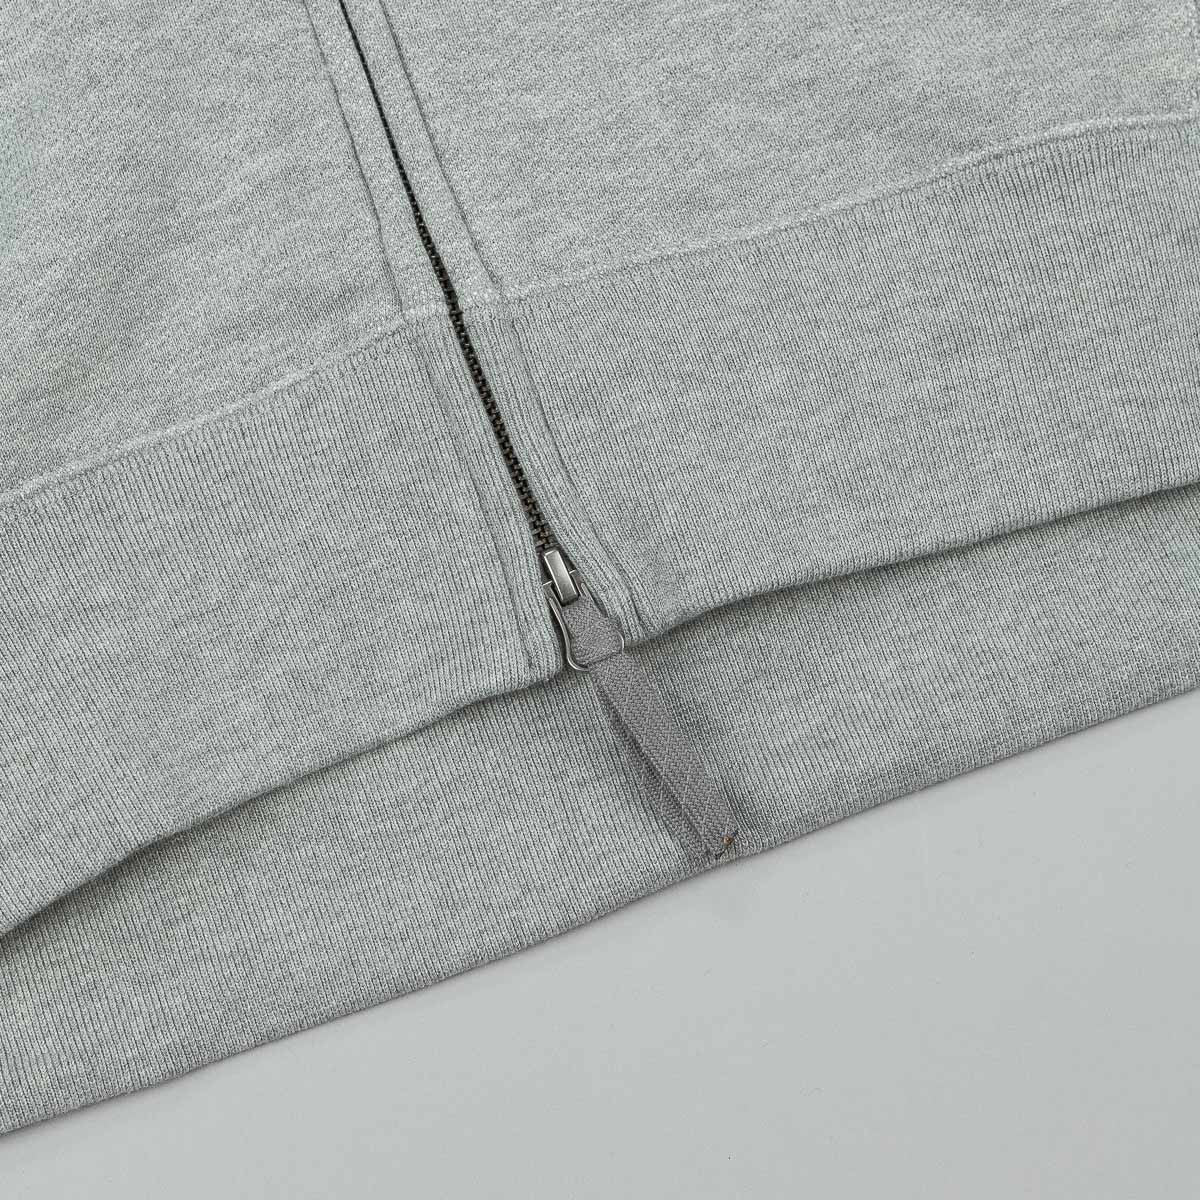 Nike SB Everett Graphic Zip Hooded Sweatshirt - Dark Grey Heather / Black